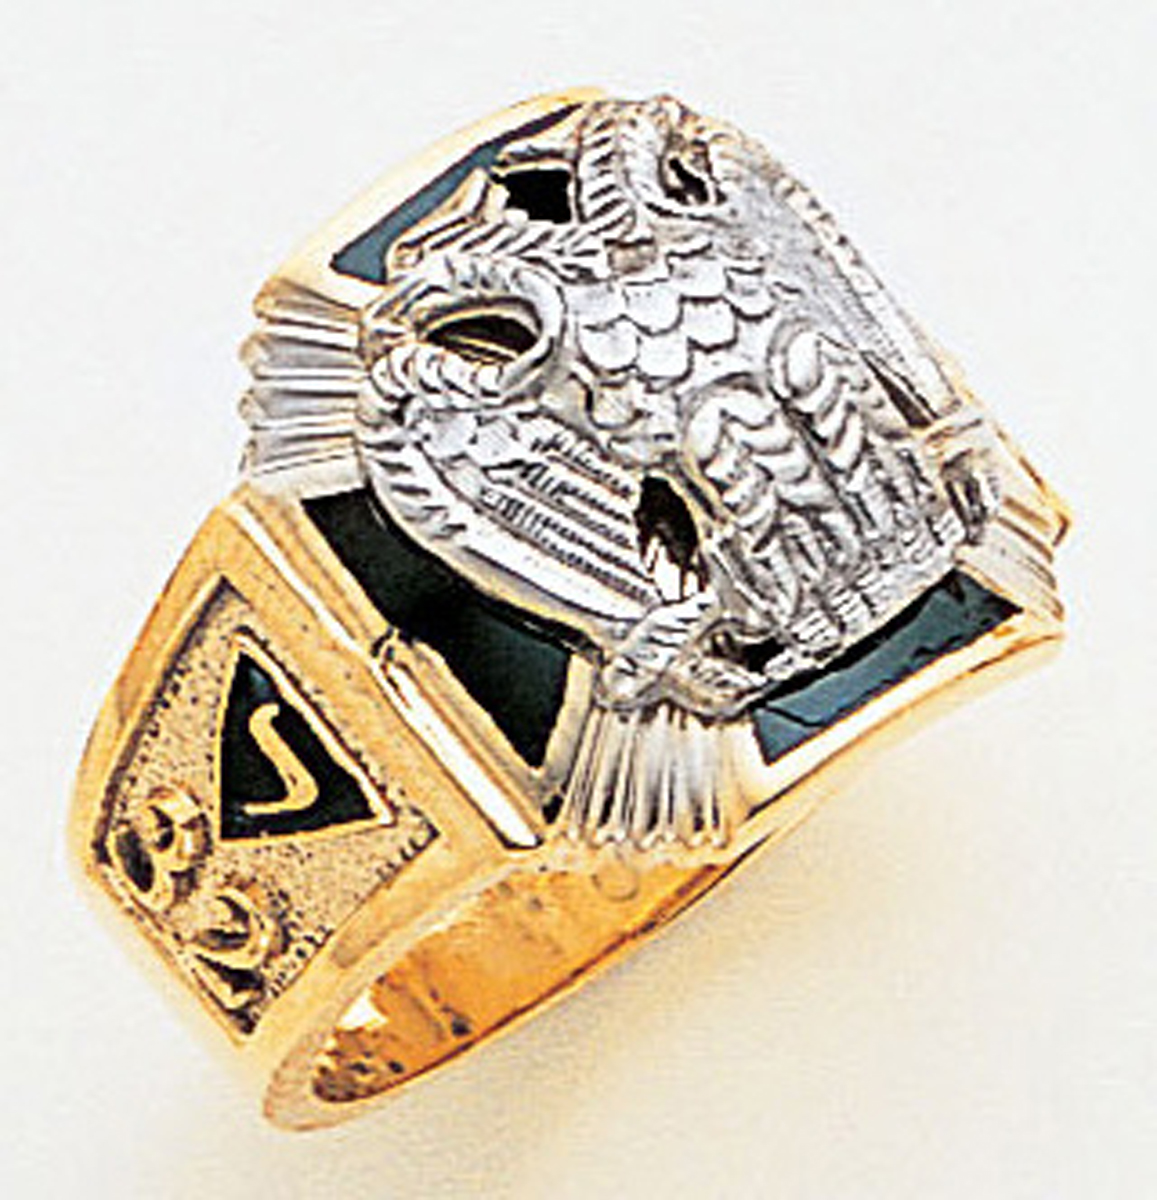 Masonic 32 Degree Scottish Rite Ring Macoy Publishing Masonic Supply 3433